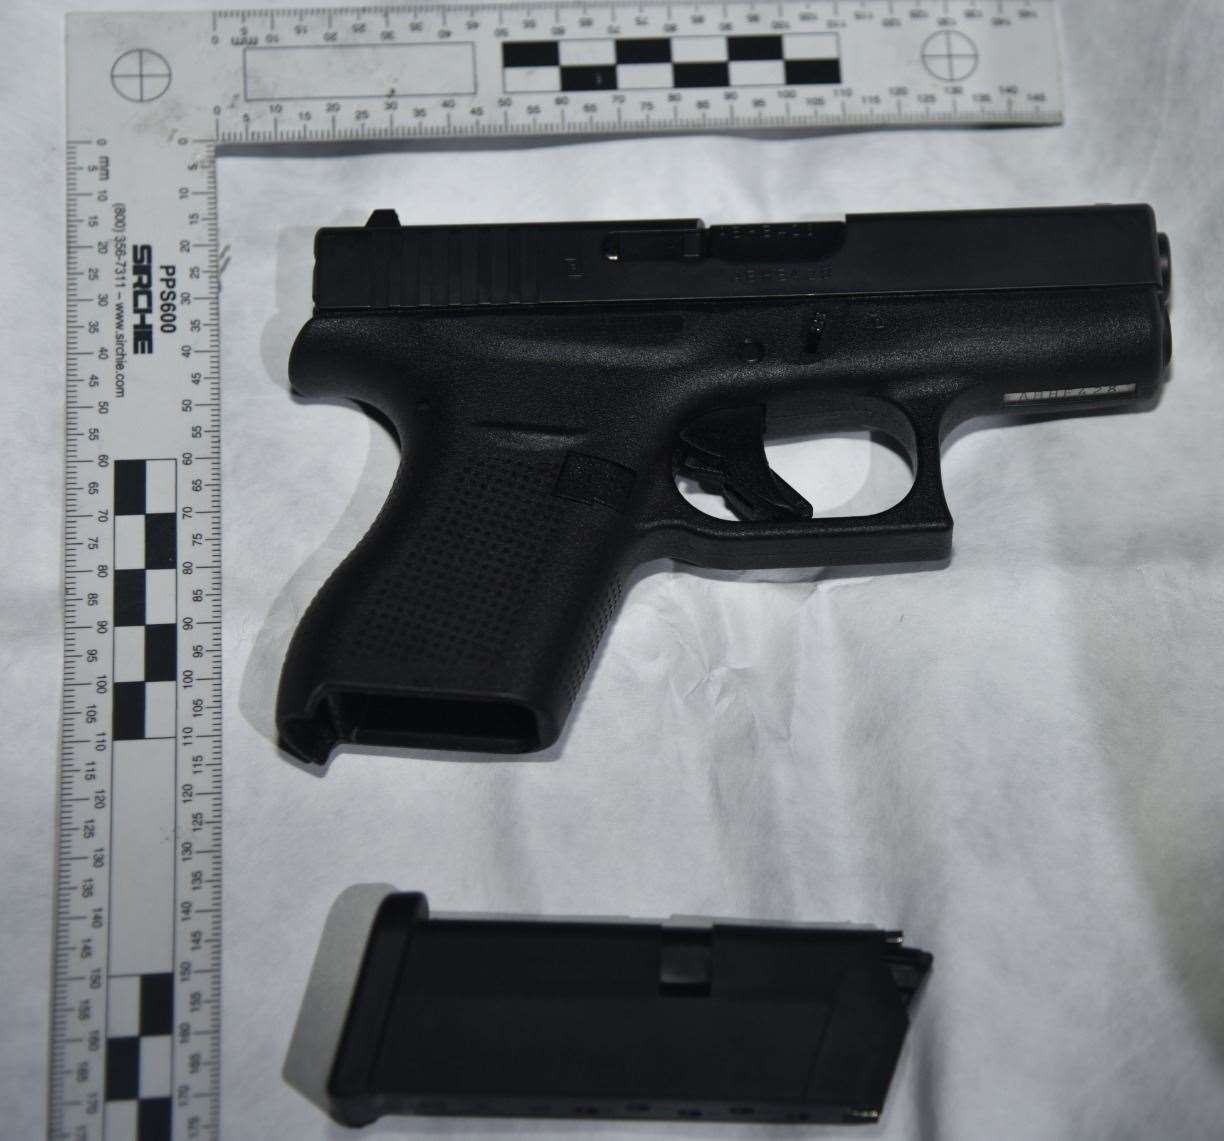 A Glock pistol similar to the one used to threaten the Marden couple.  Photo NCA